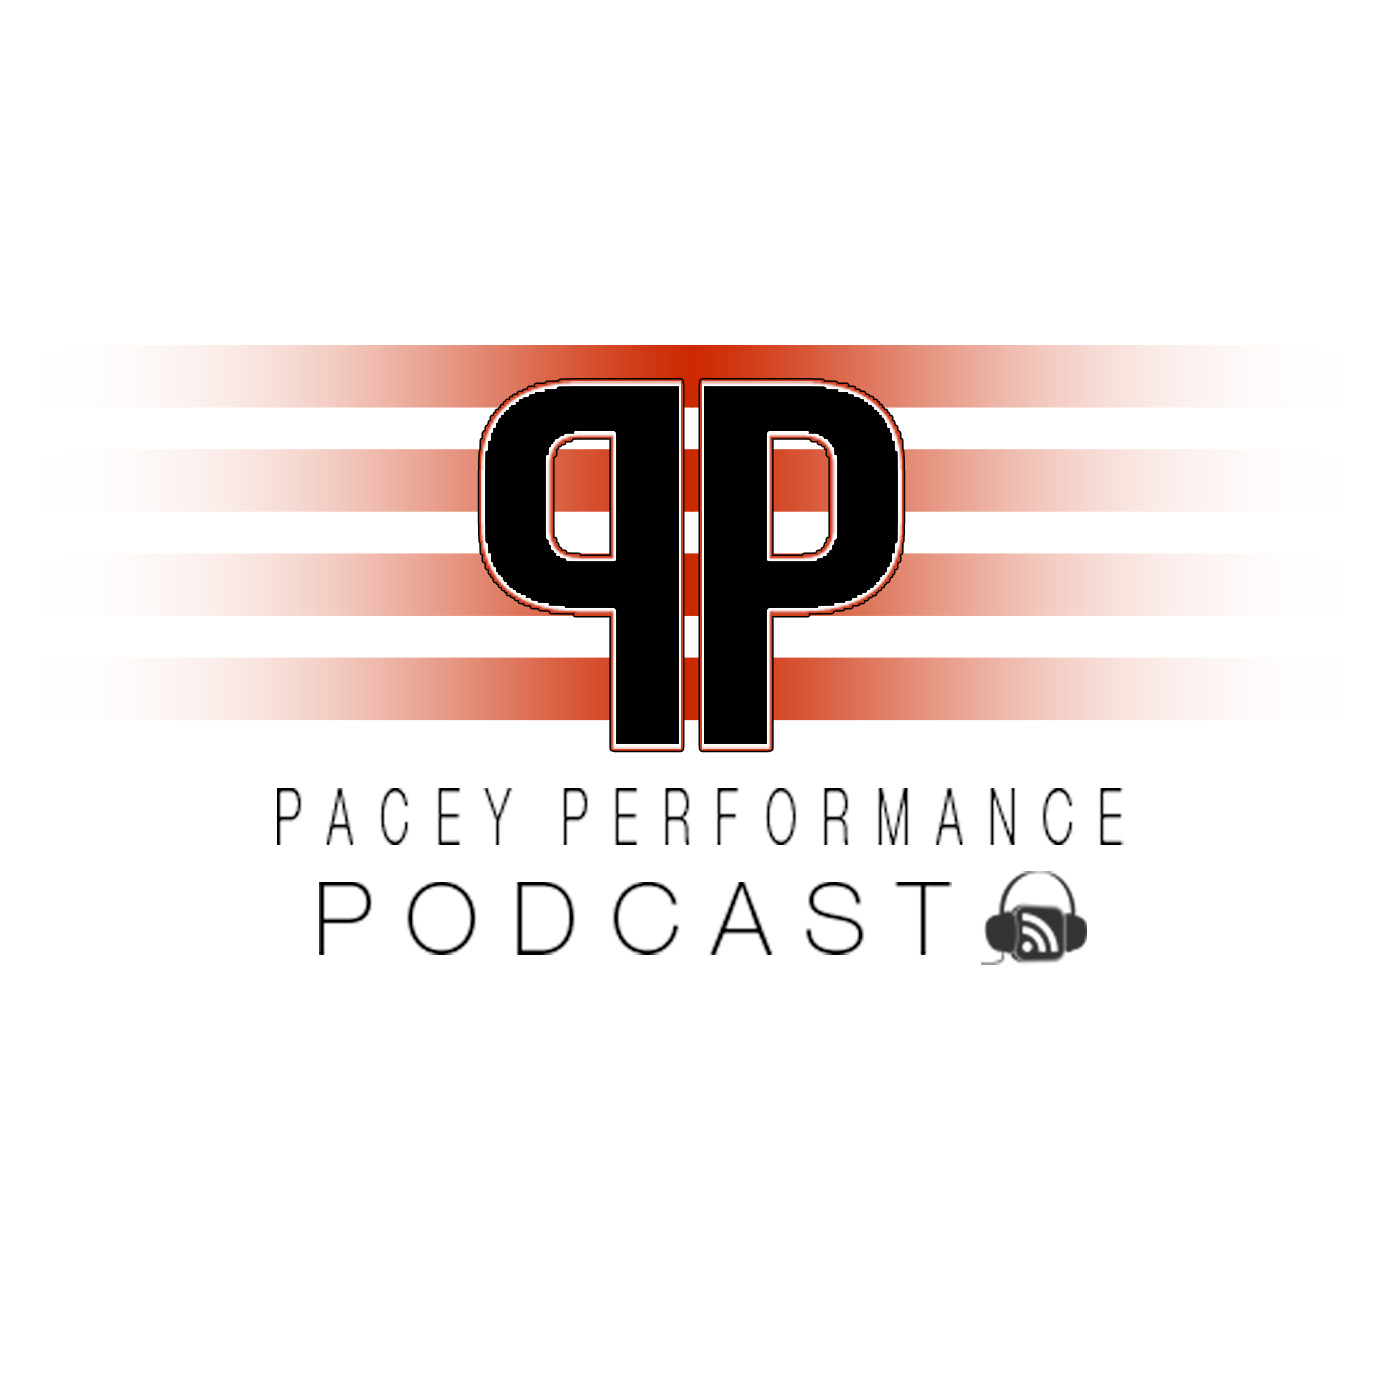 Pacey Performance Podcast #16 - John Noonan